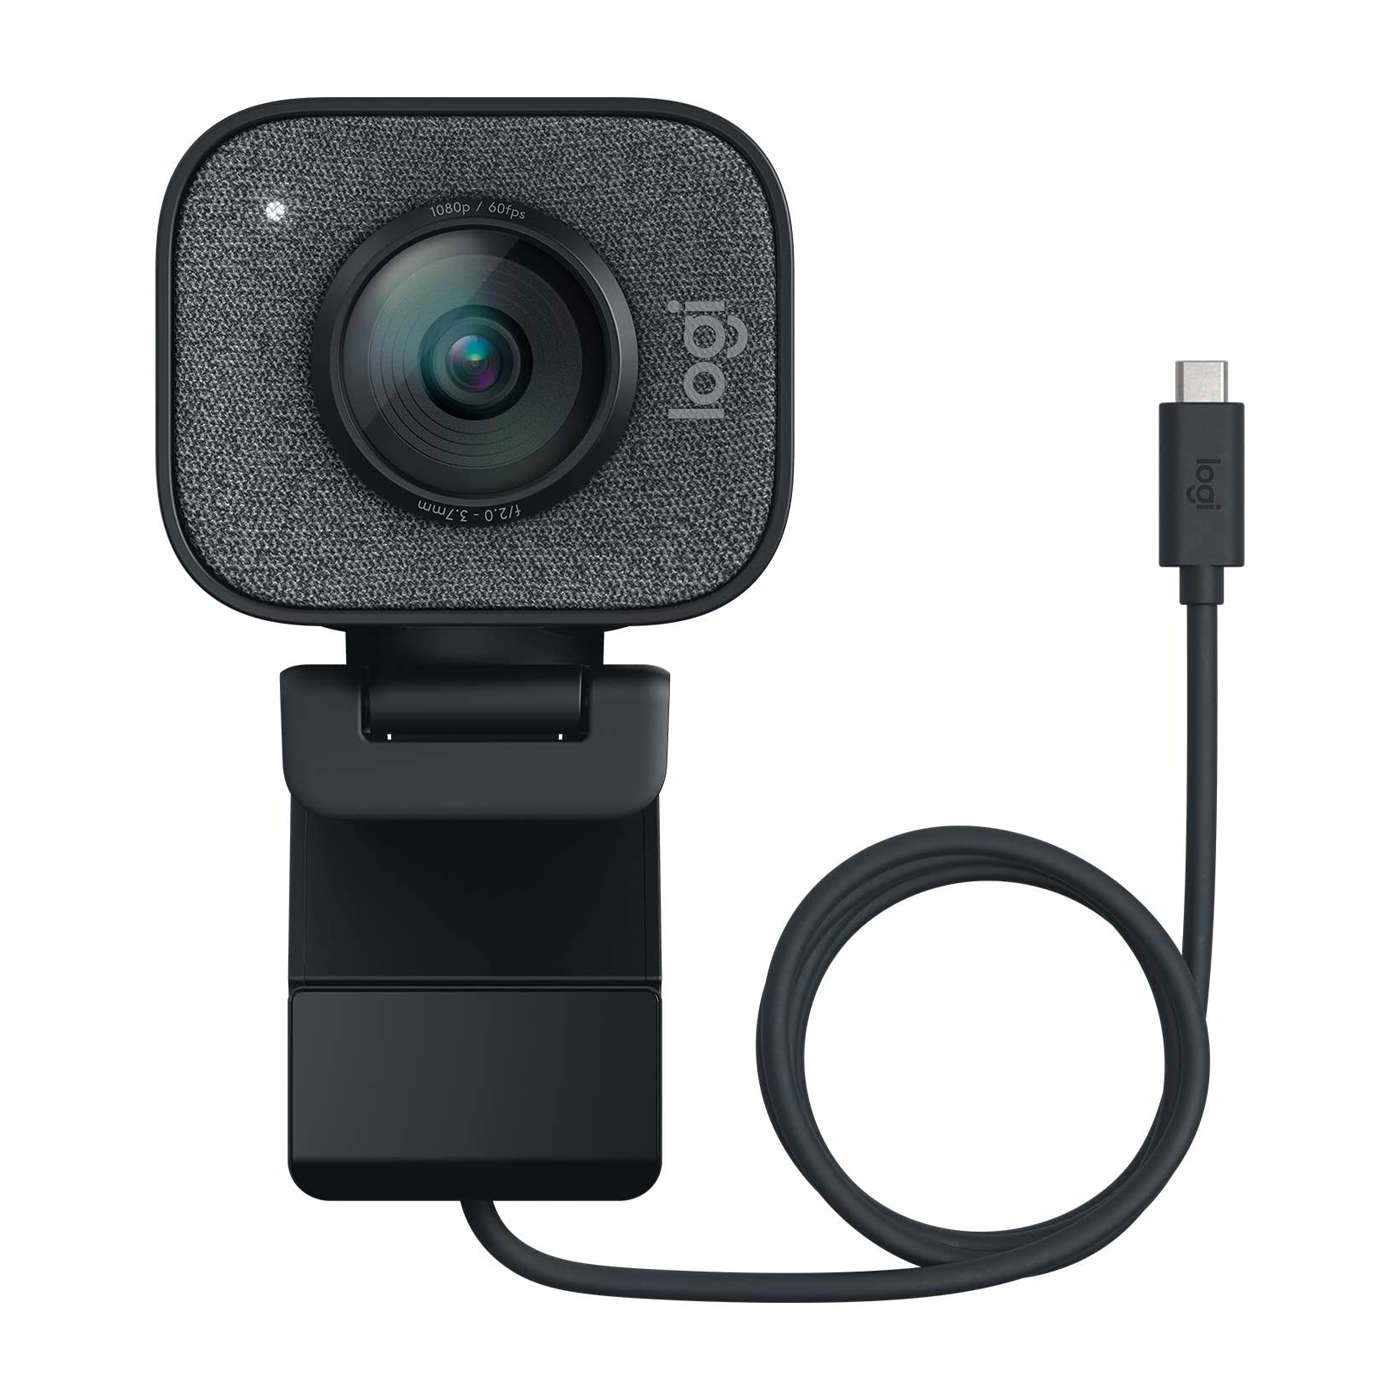 An image of a Logitech Streamcam on a white background